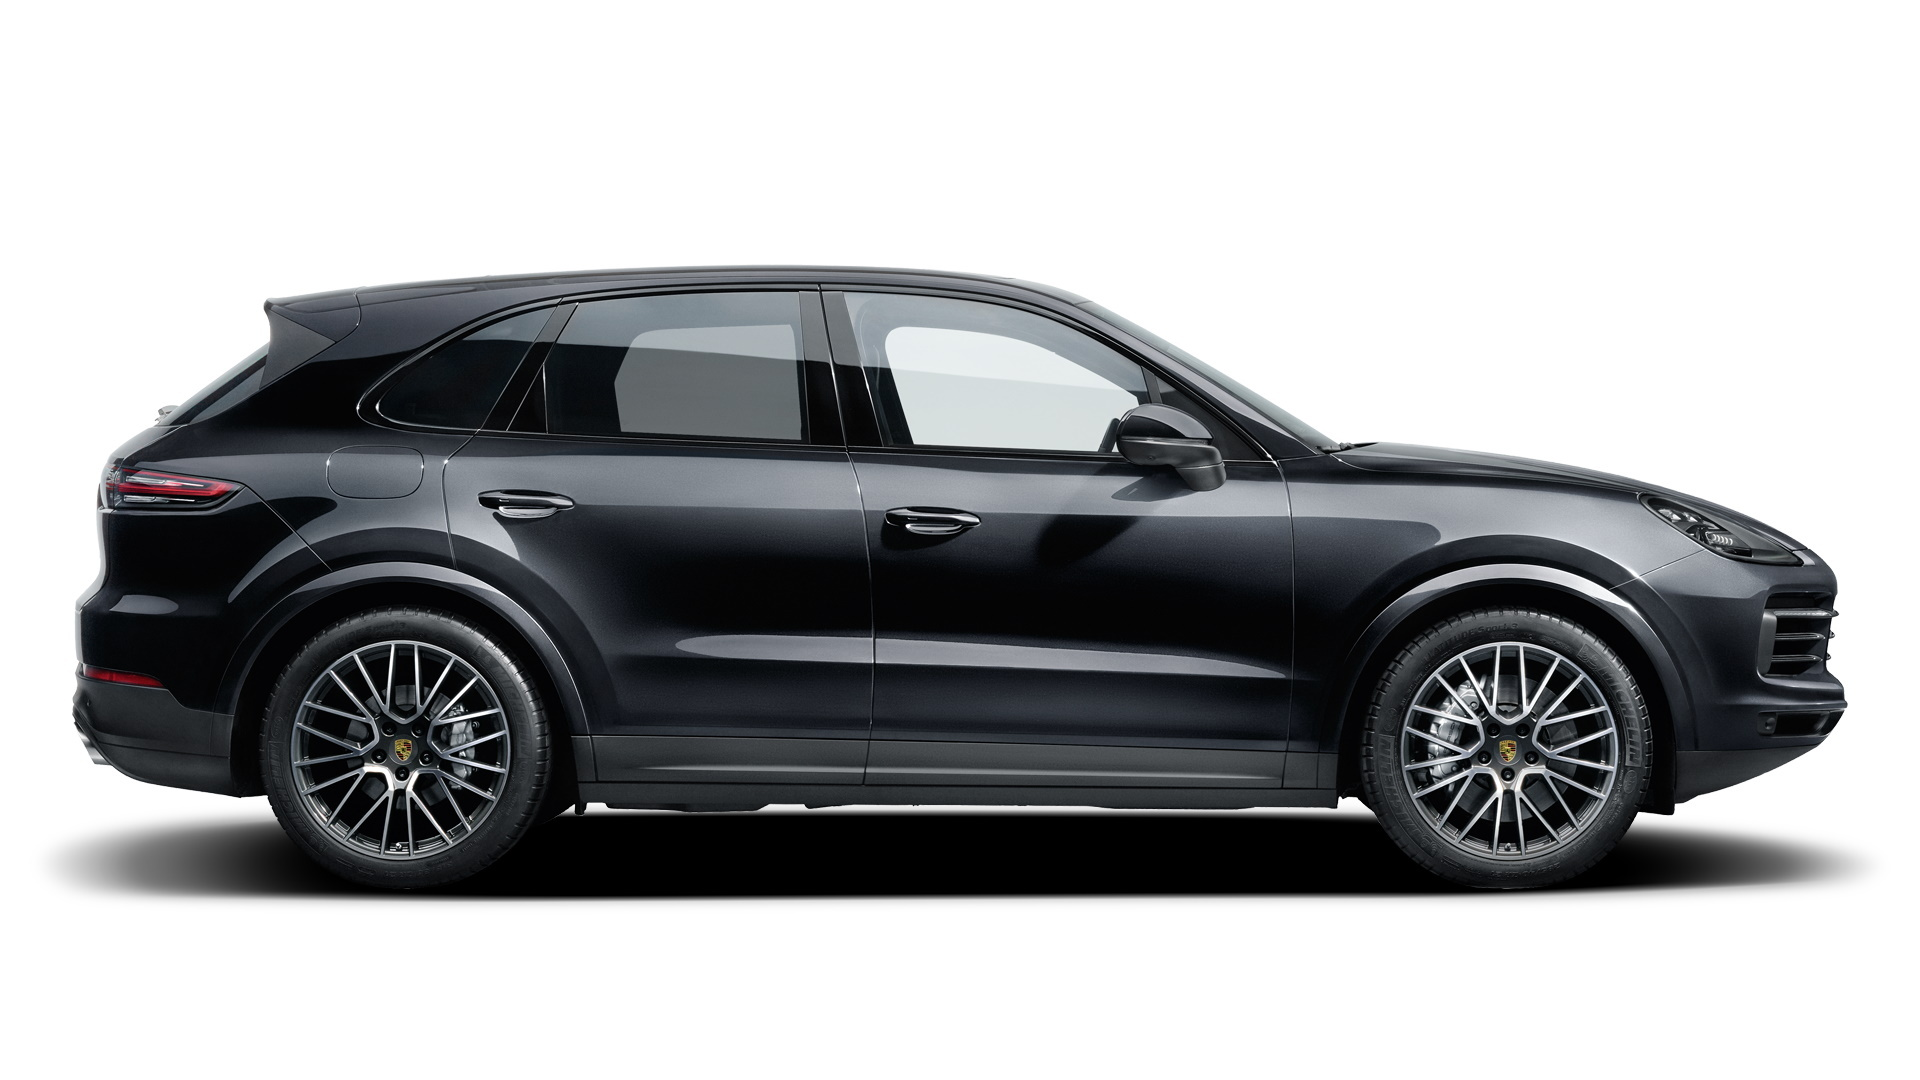 Porsche The new Cayenne S